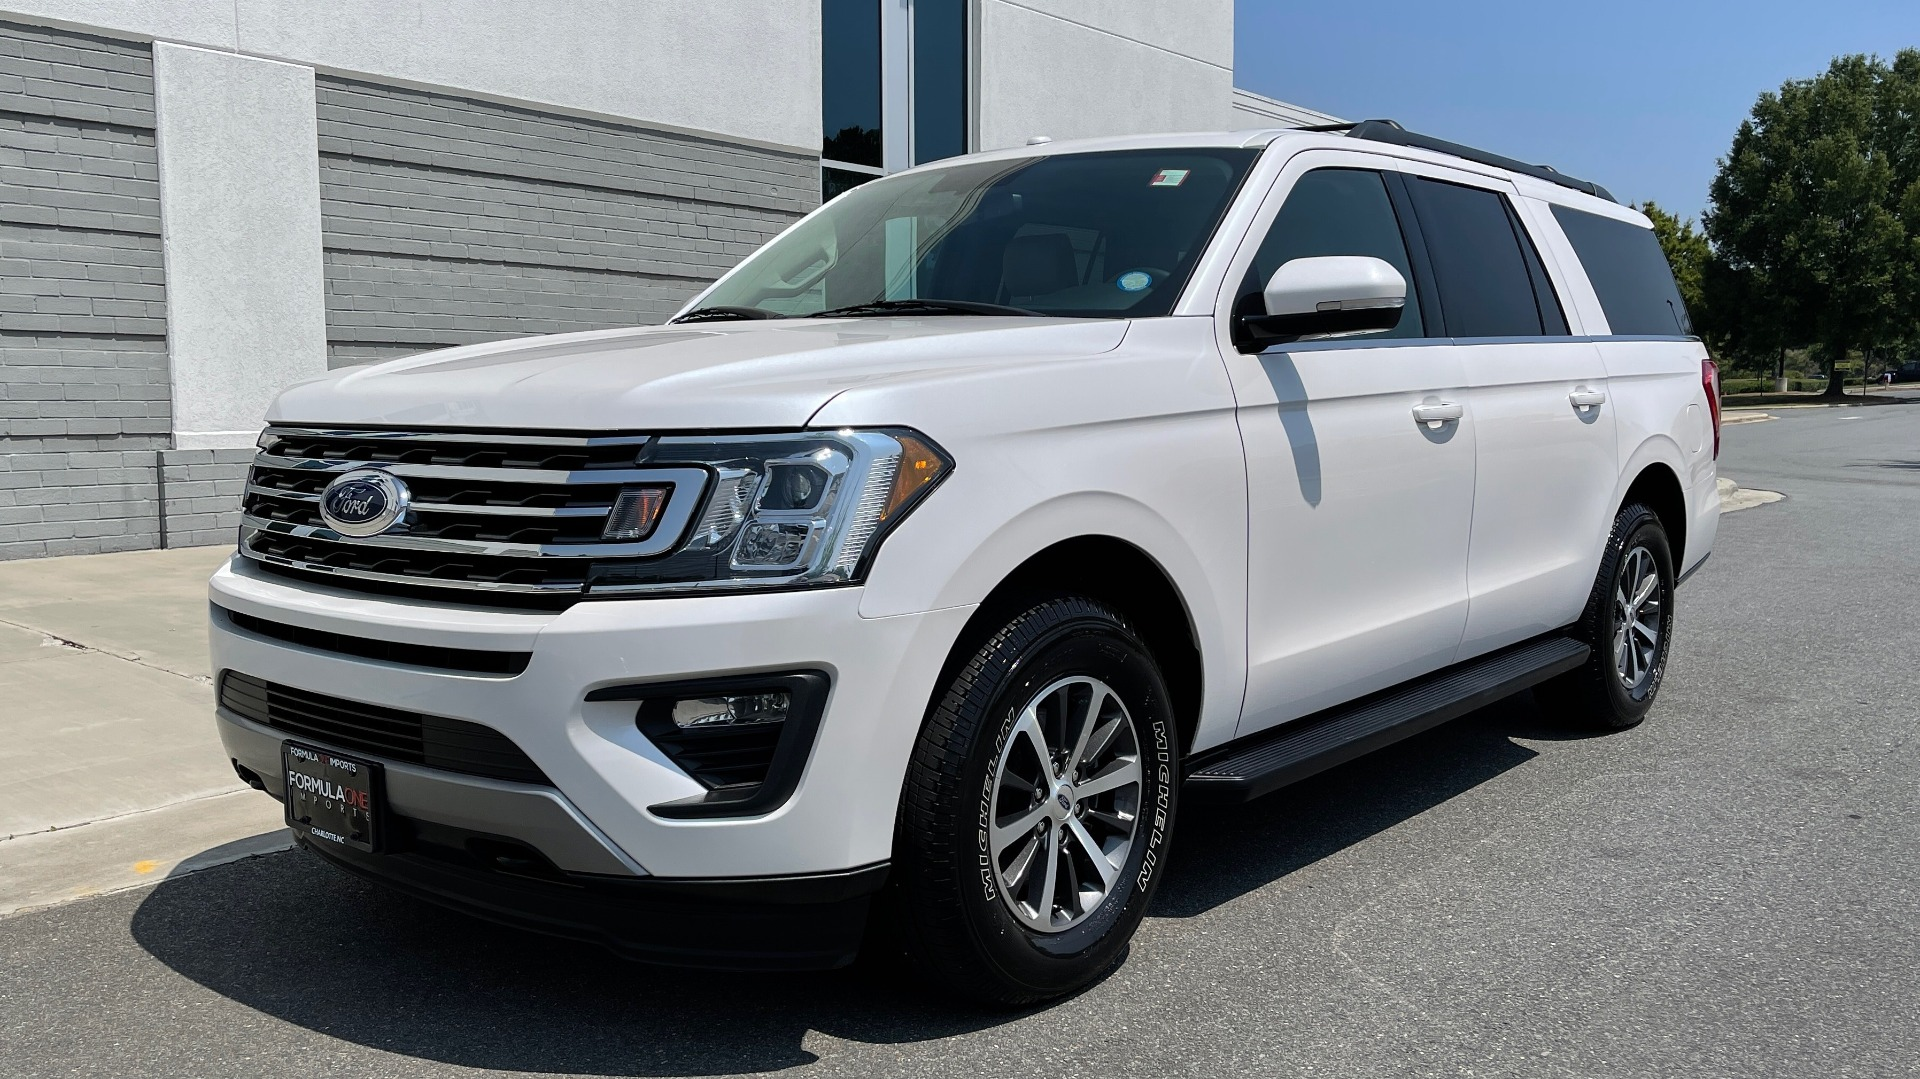 Used 2019 Ford EXPEDITION MAX XLT / 3.5L ECOBOOST / NAV / PANO-ROOF / 3-ROWS / REARVIEW for sale Sold at Formula Imports in Charlotte NC 28227 3